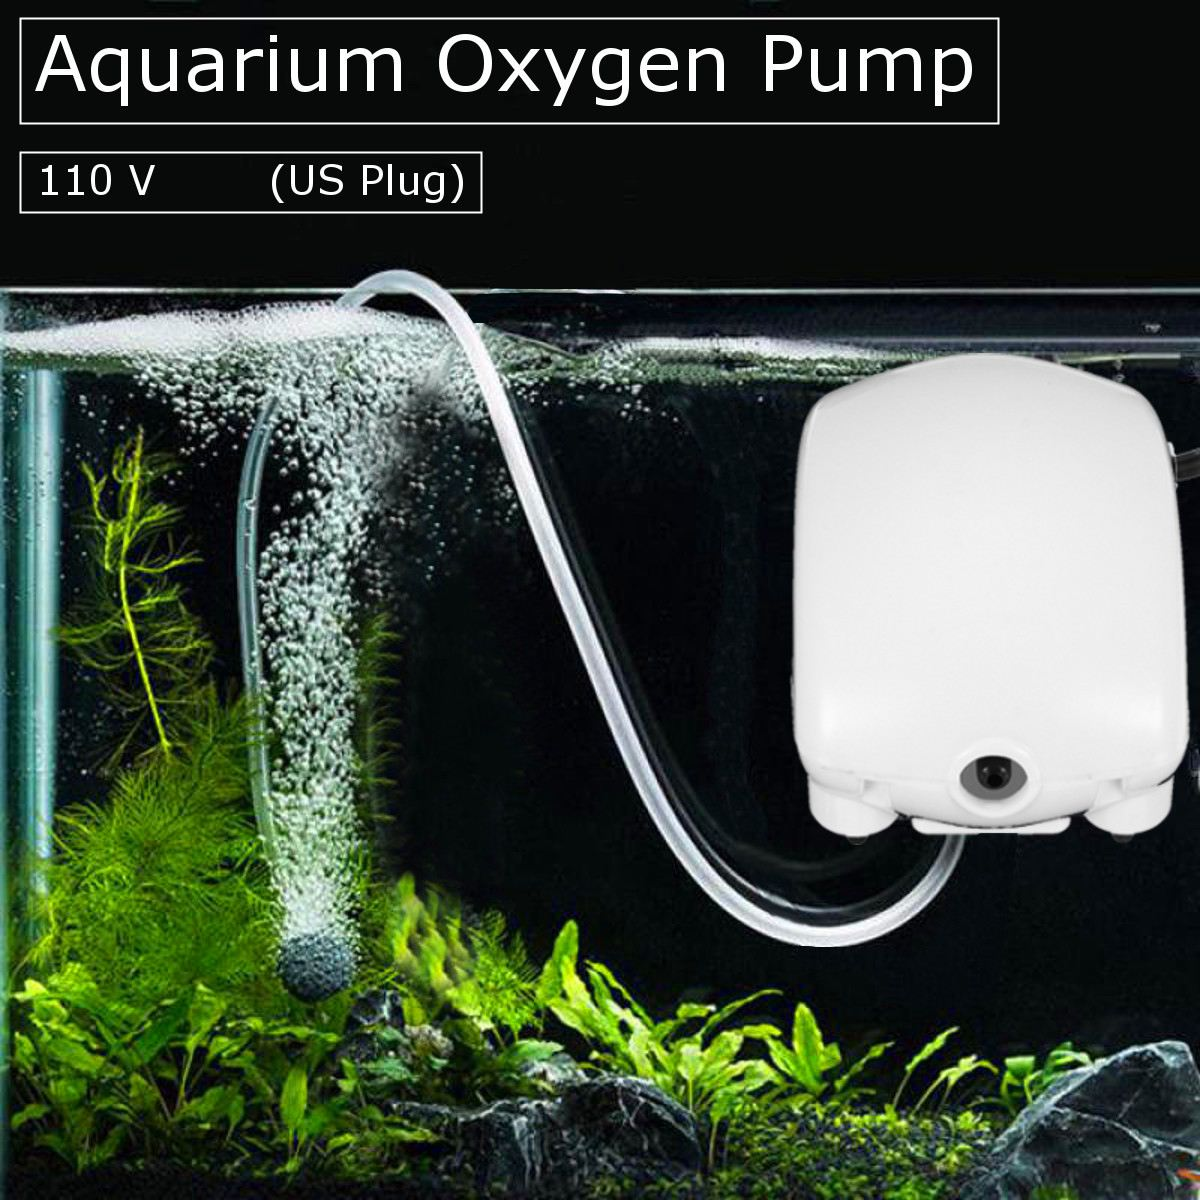 Culture Fish Oxygen Pump Mute Oxygen Pump Fish Tank Oxygen Filling Pump Small-sized Hit Oxygen Machine Aquarium Articles 390 Power Tool Accessories Tools